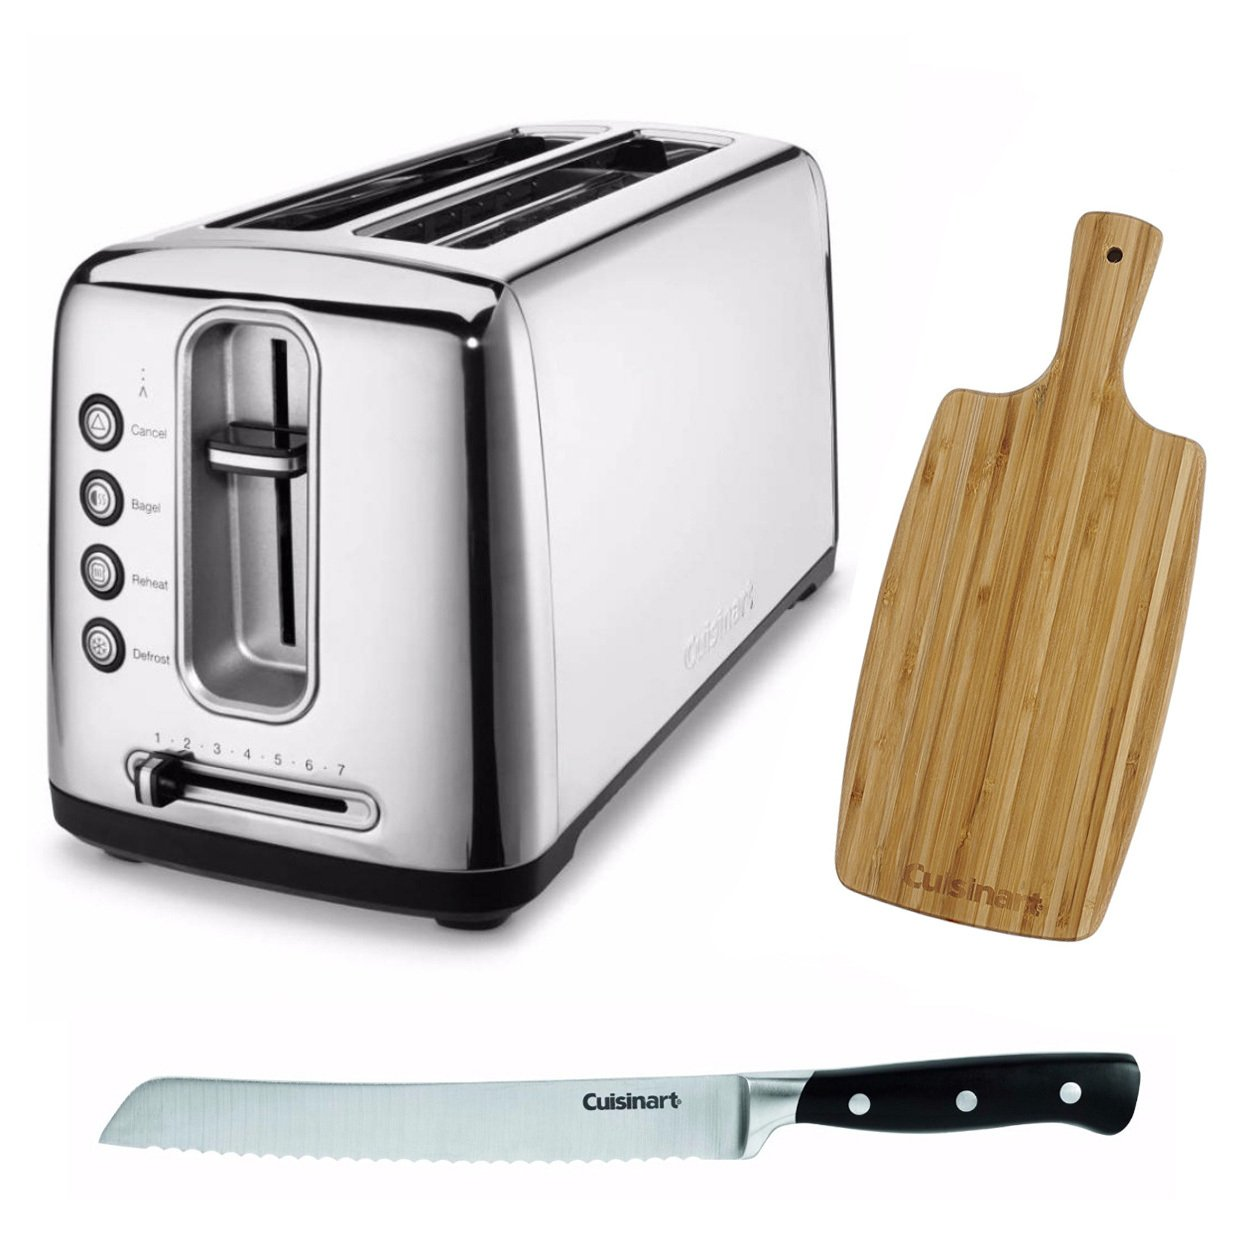 Cuisinart CPT-2400 The Bakery Artisan Bread Toaster + Free Bread Knife and Cutting Board